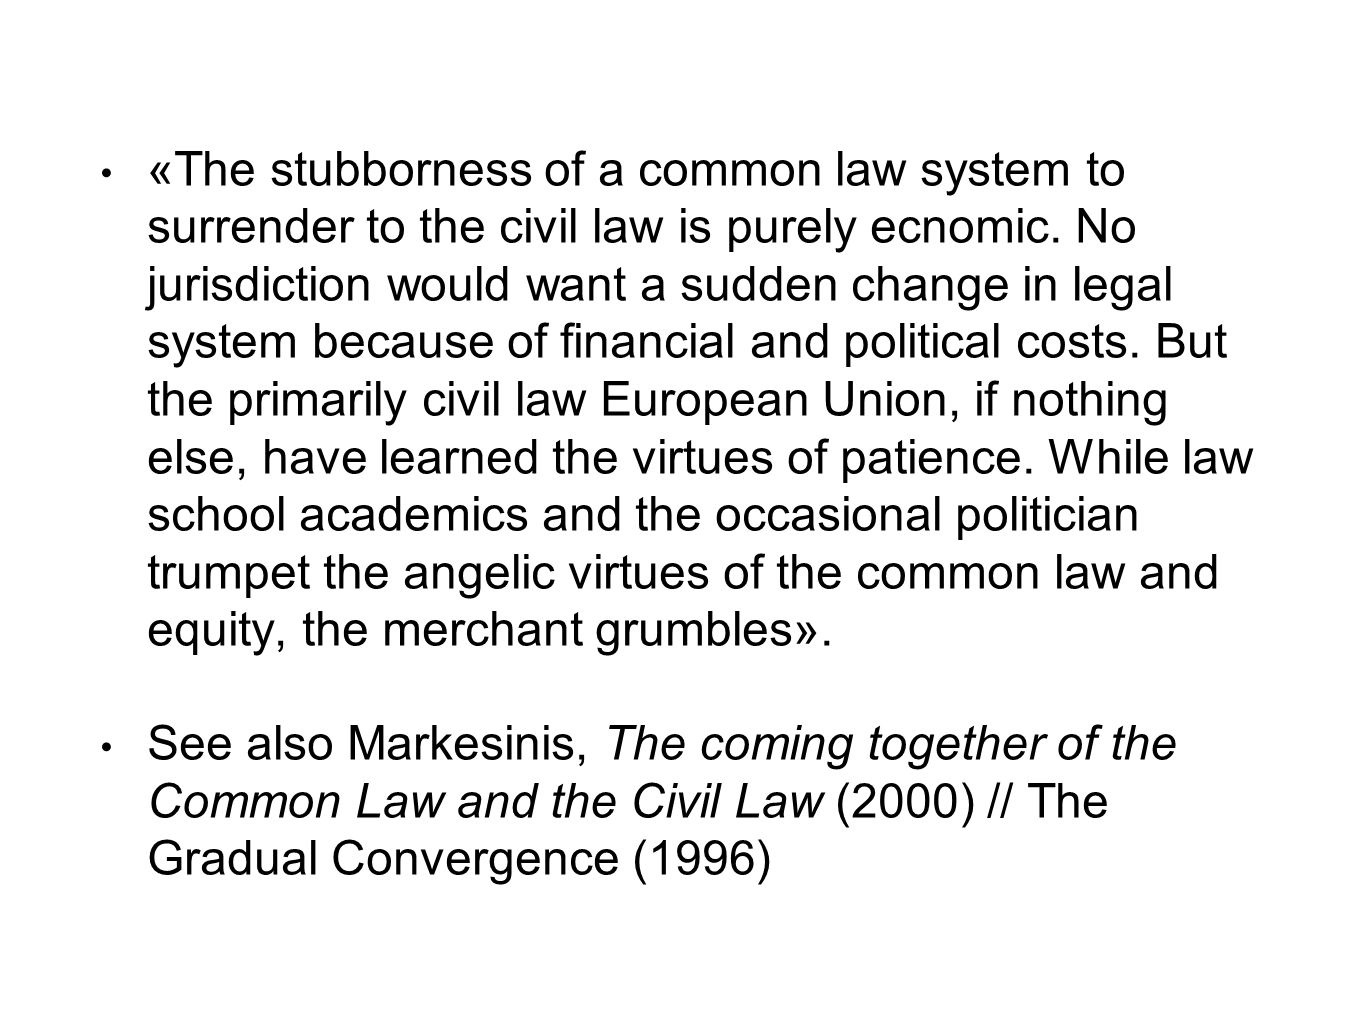 «The stubborness of a common law system to surrender to the civil law is purely ecnomic. No jurisdiction would want a sudden change in legal system because of financial and political costs. But the primarily civil law European Union, if nothing else, have learned the virtues of patience. While law school academics and the occasional politician trumpet the angelic virtues of the common law and equity, the merchant grumbles».